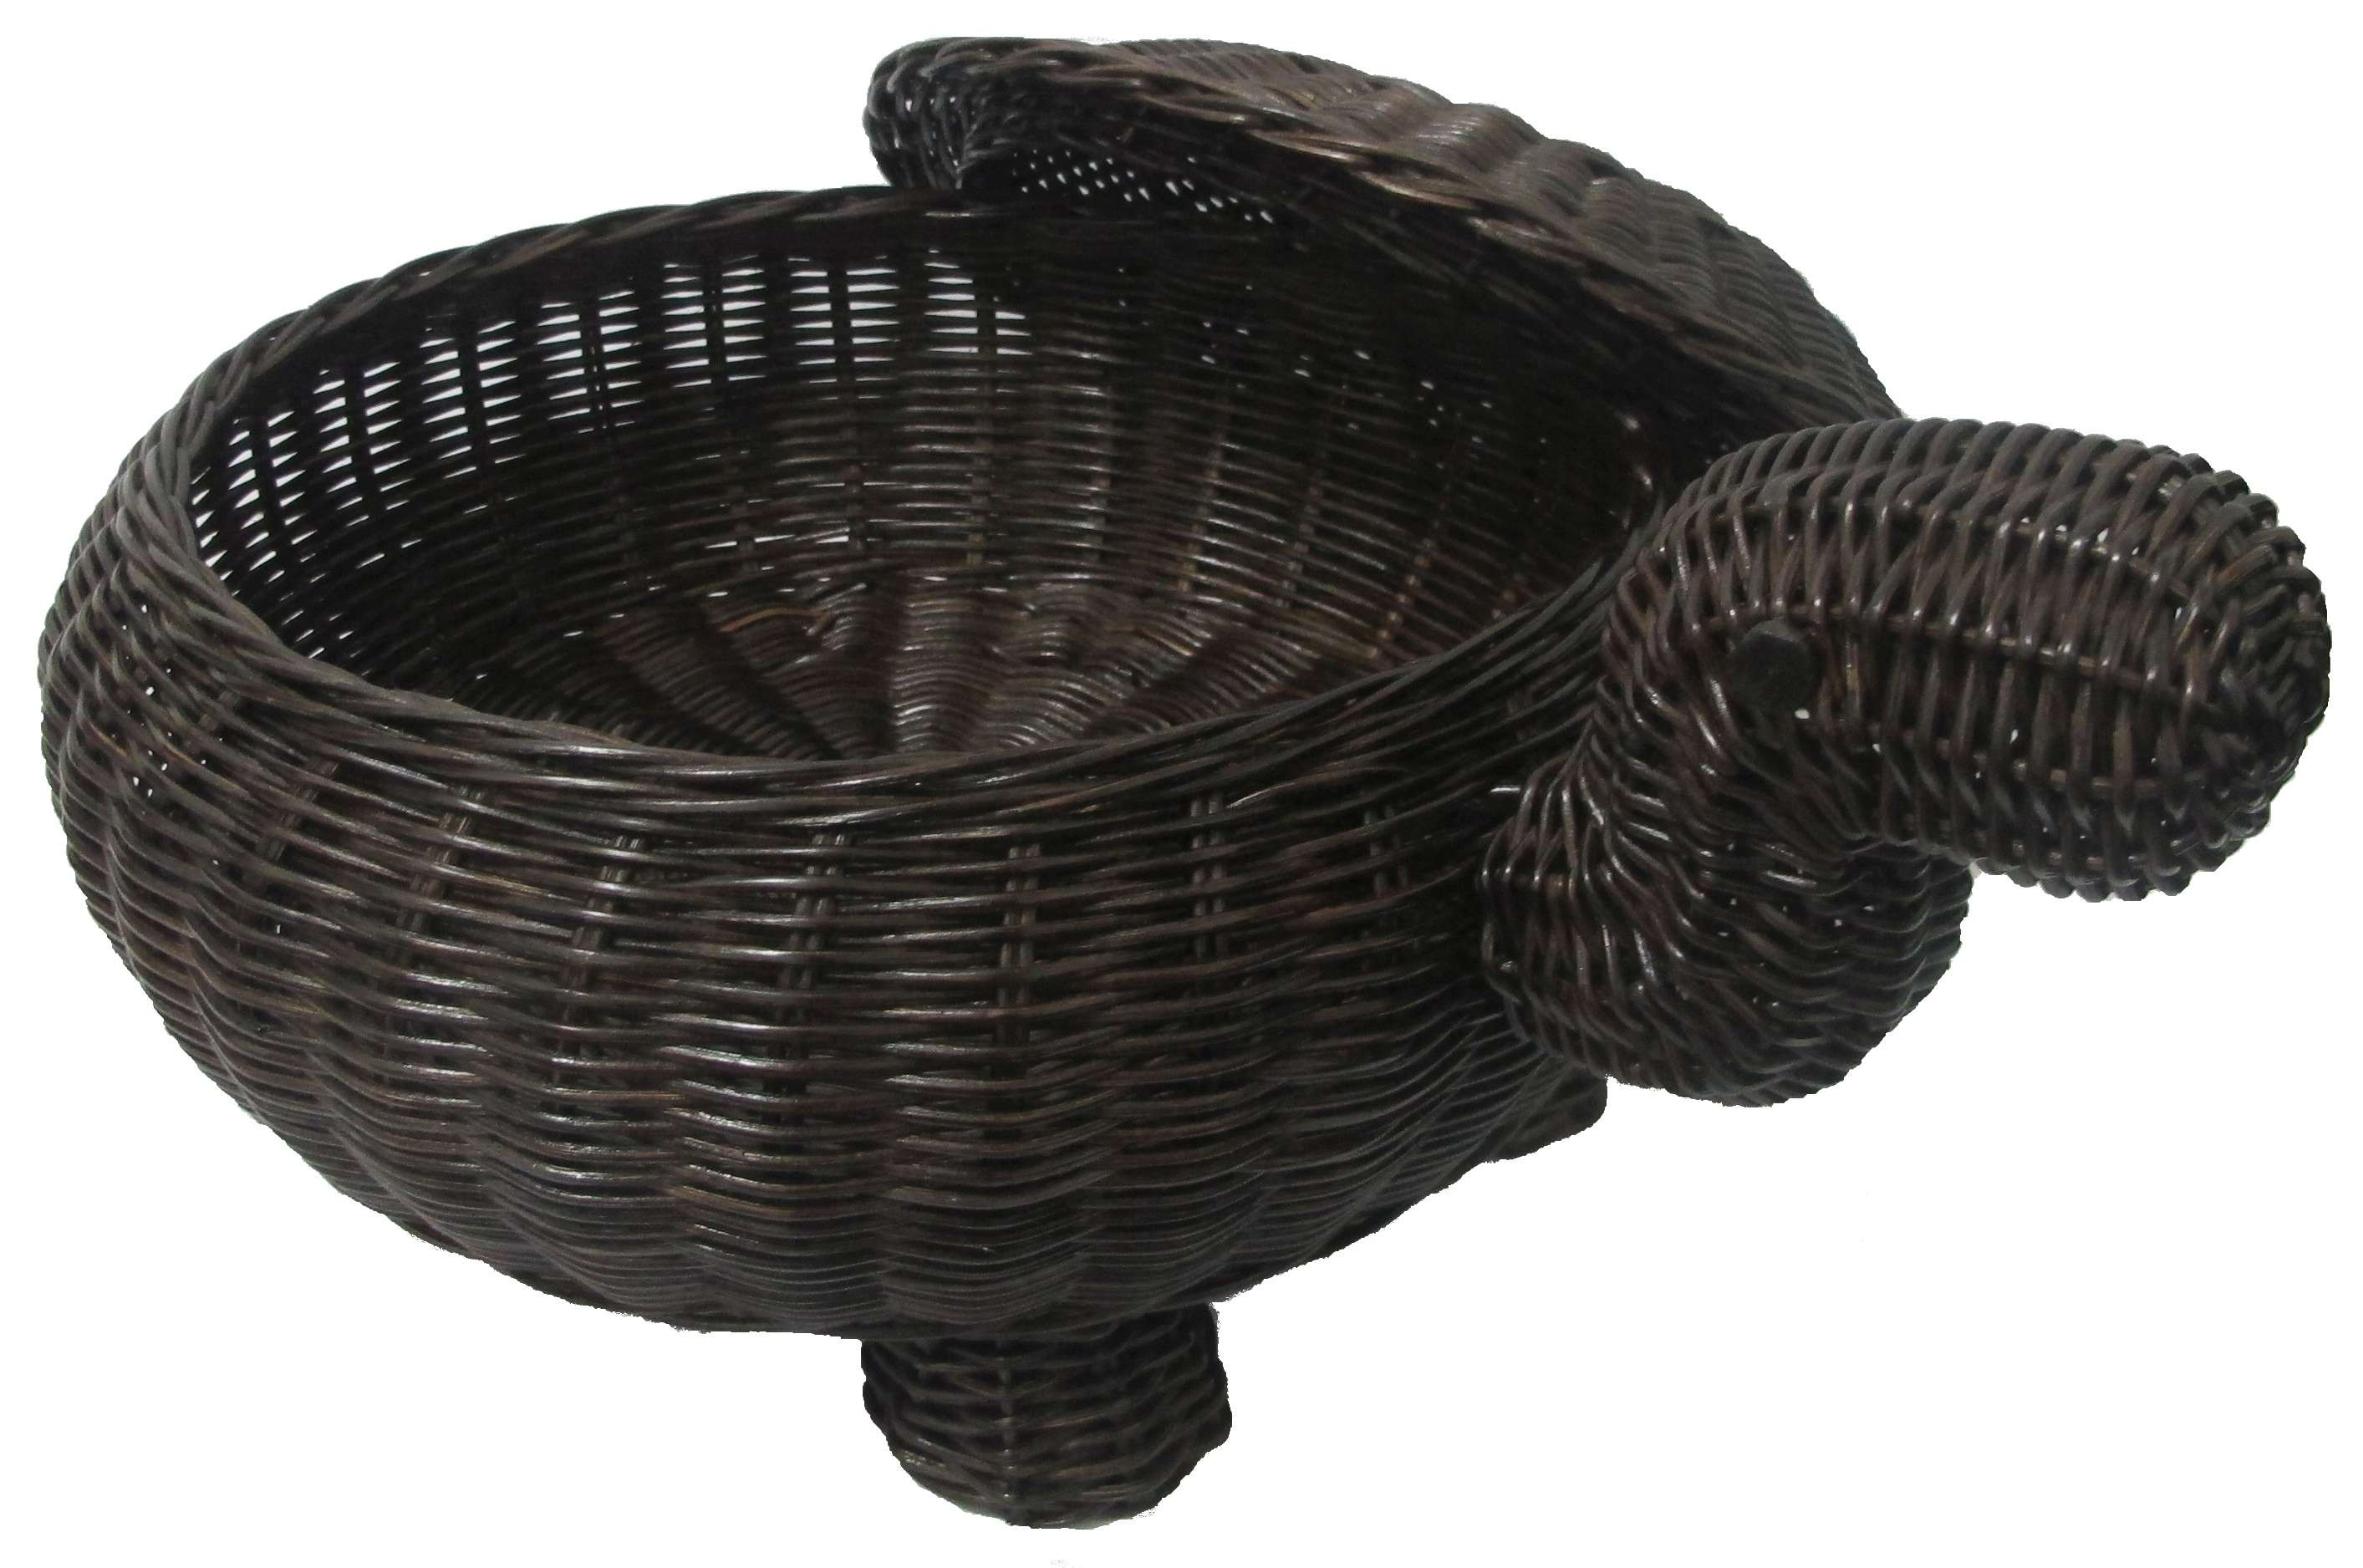 Animal Wicker Hamper Rattan Wicker Animal And Pet Baskets Dog Baskets